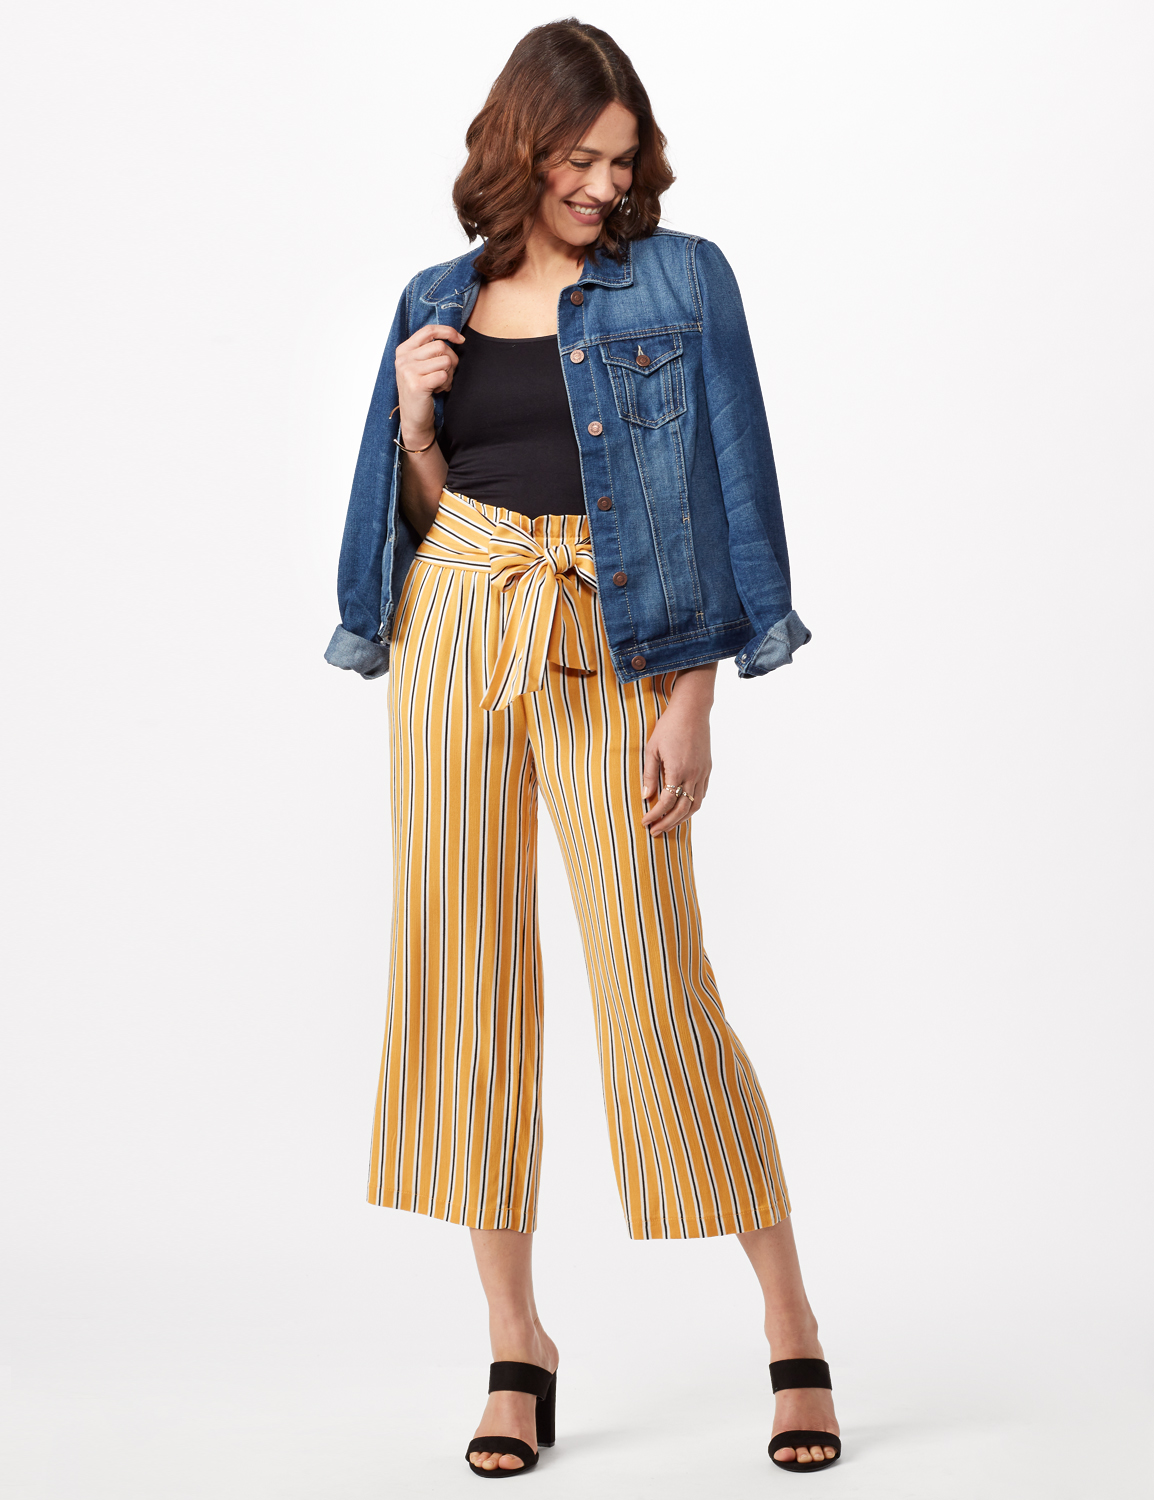 Gold Striped Pants with Tie Waist - Gold - Front